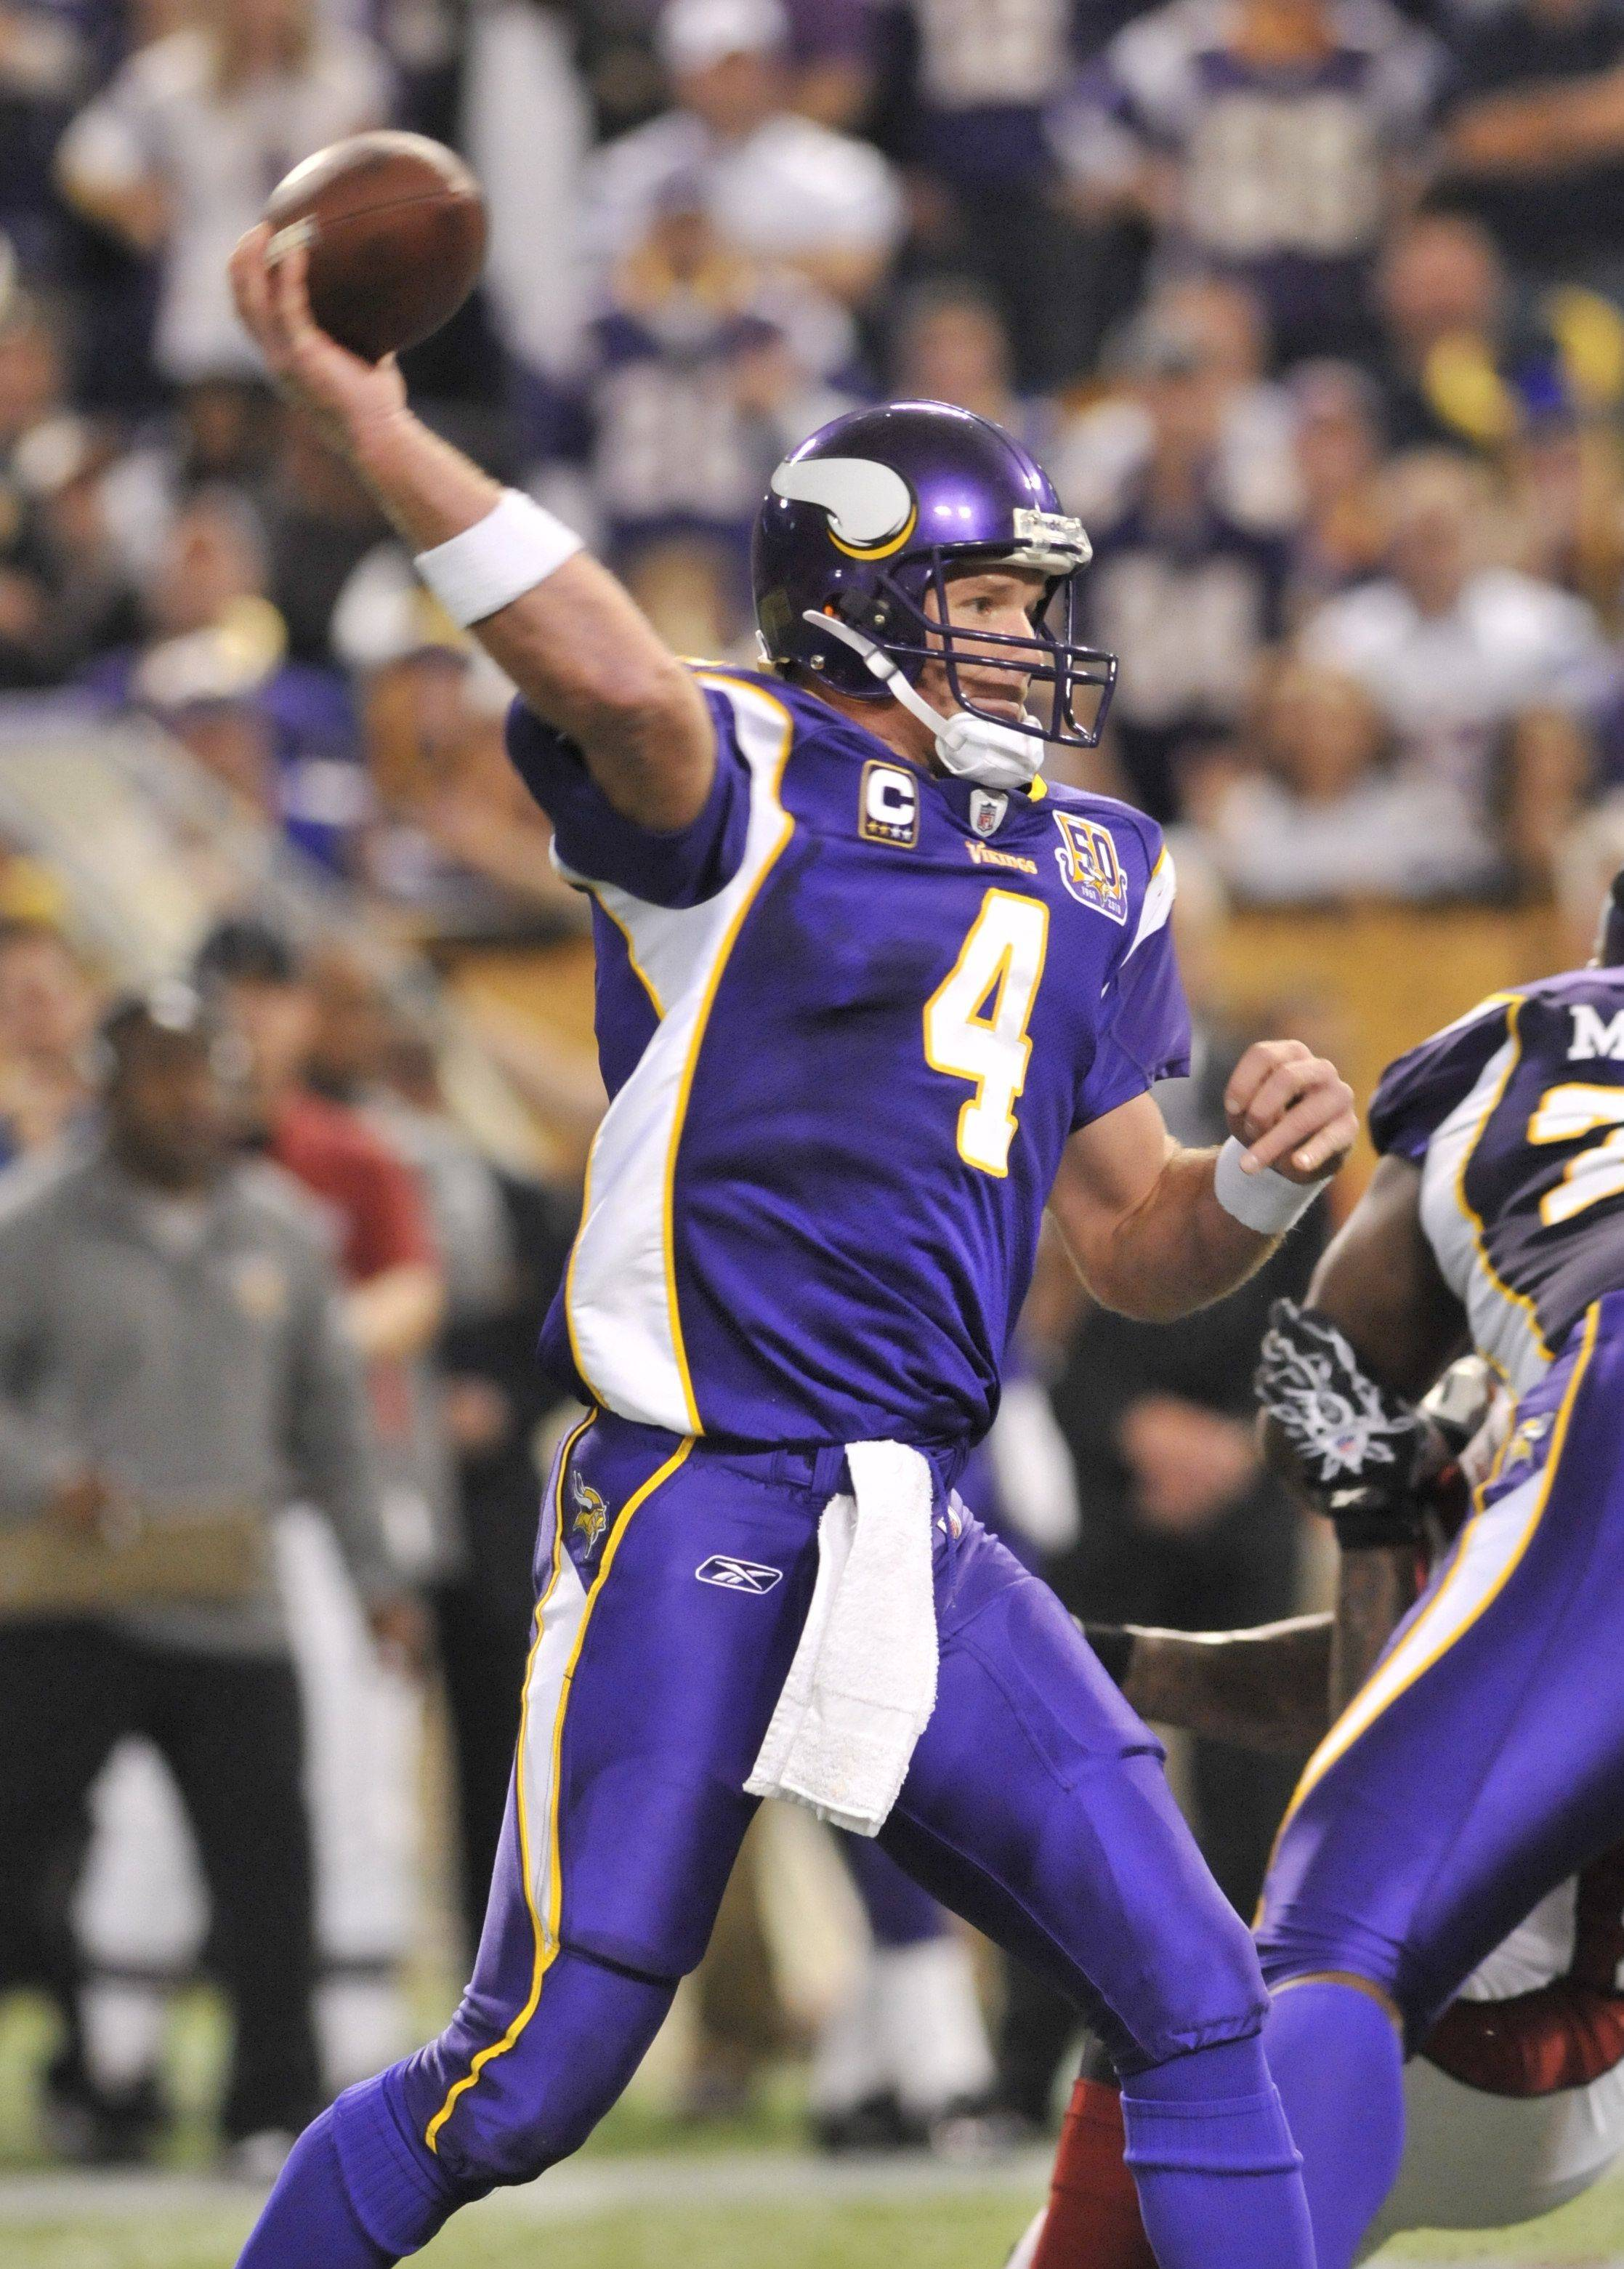 Minnesota Vikings quarterback Brett Favre throws against the Arizona Cardinals in the second half of an NFL football game Sunday, Nov. 7, 2010 in Minneapolis. The Vikings won 27-24 in overtime.